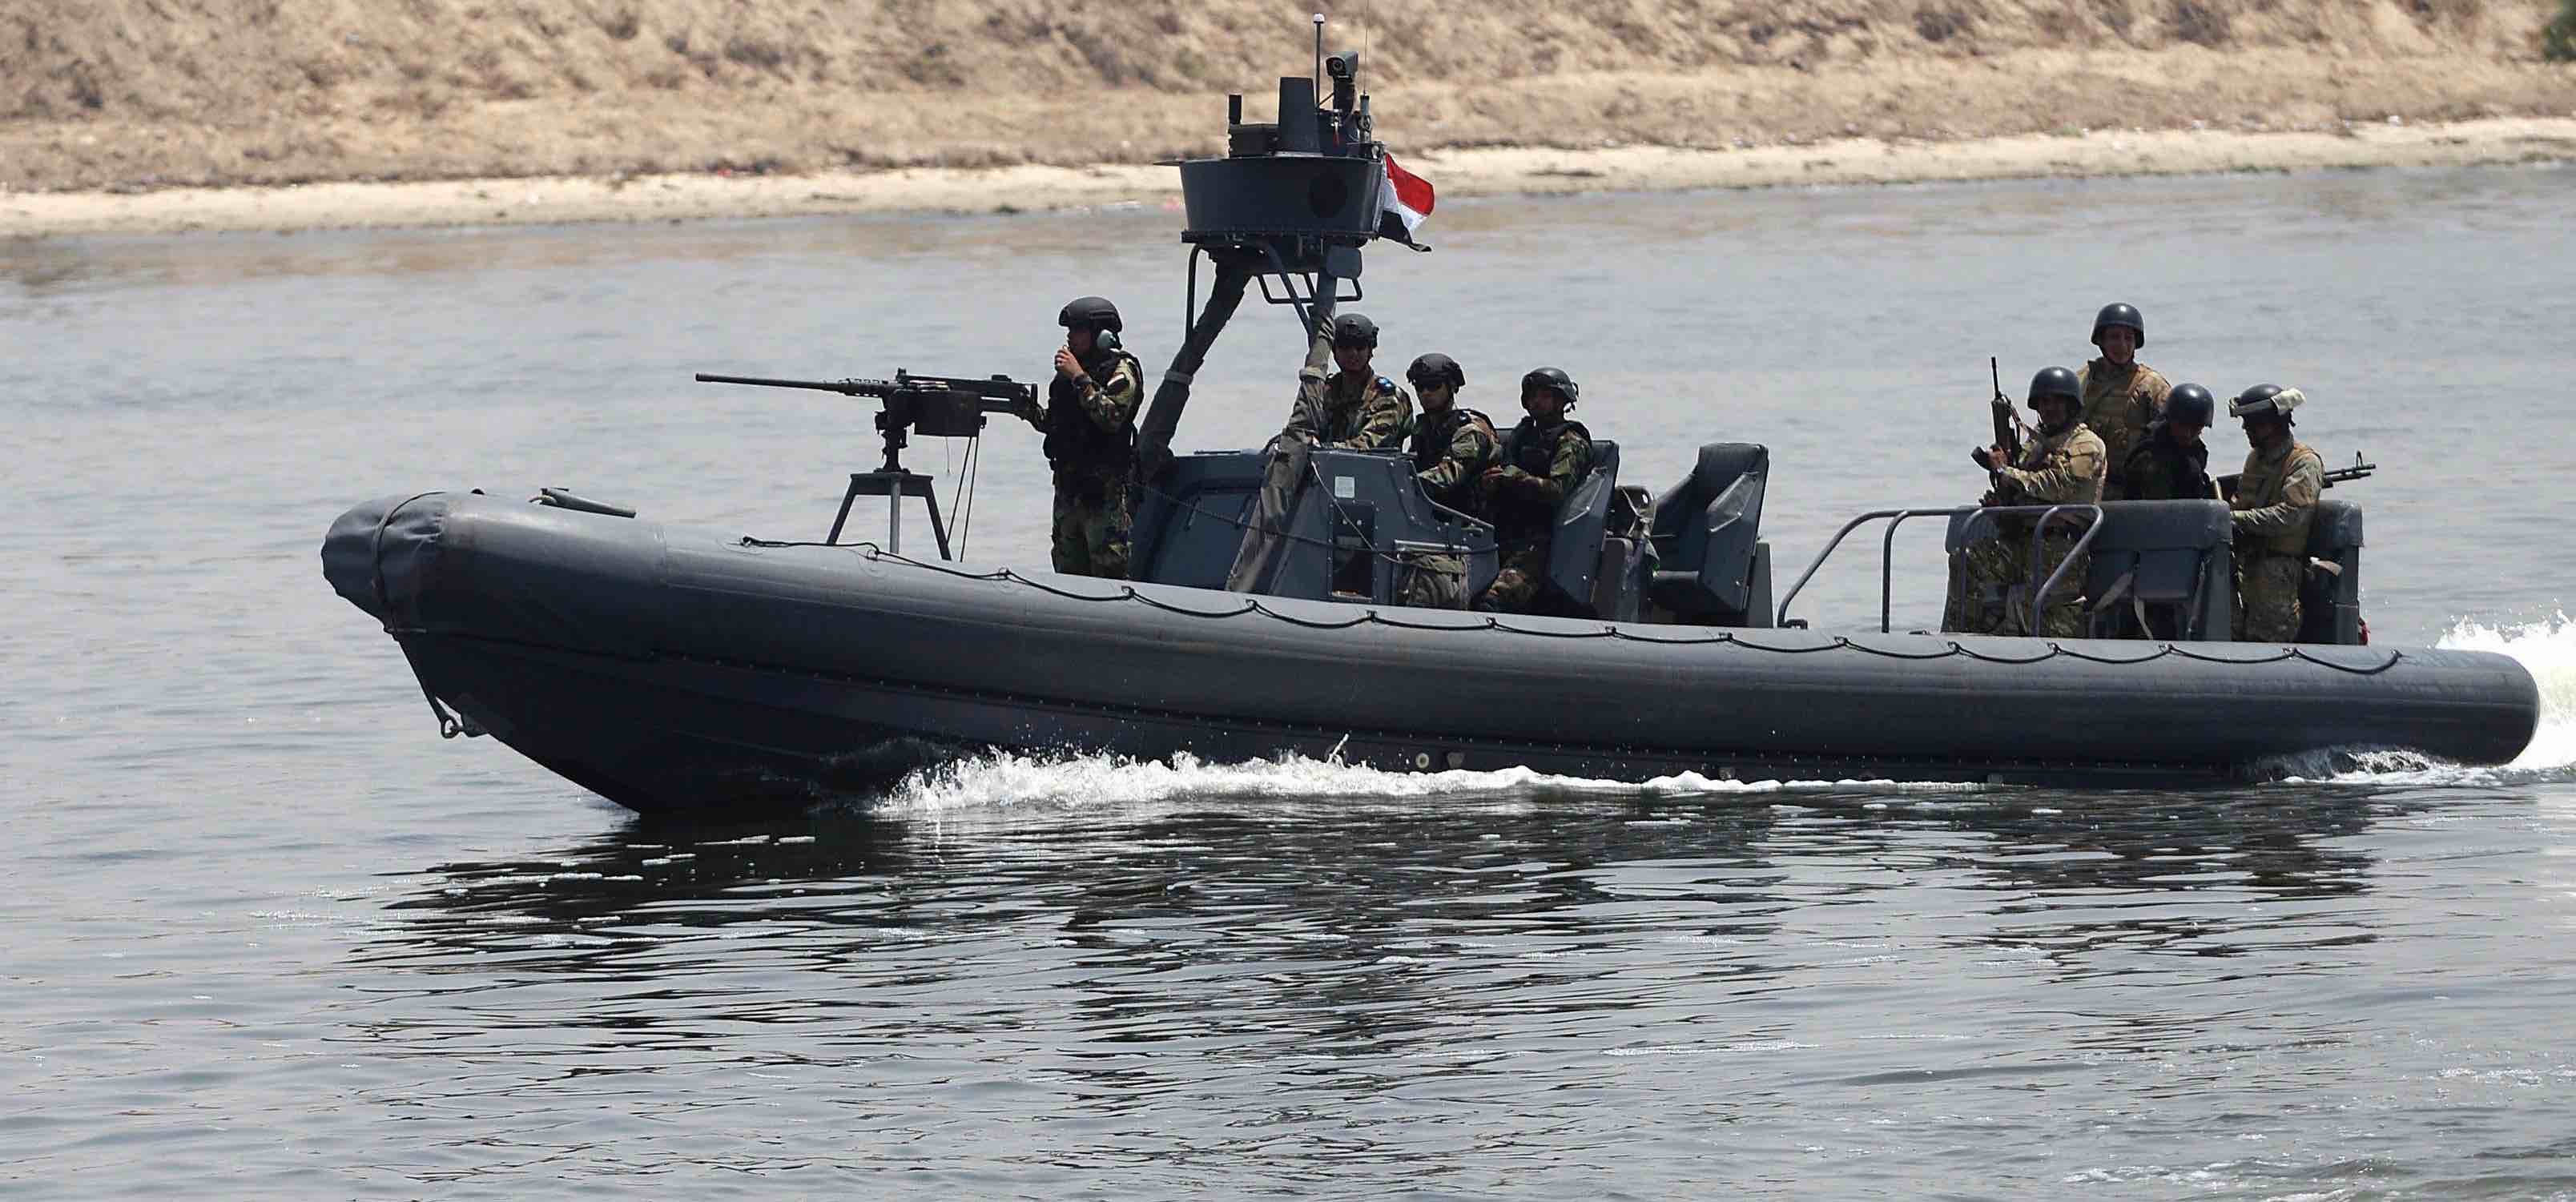 An Egyptian patrol in the Suez Canal (Photo: Anadolu Agency via Getty)